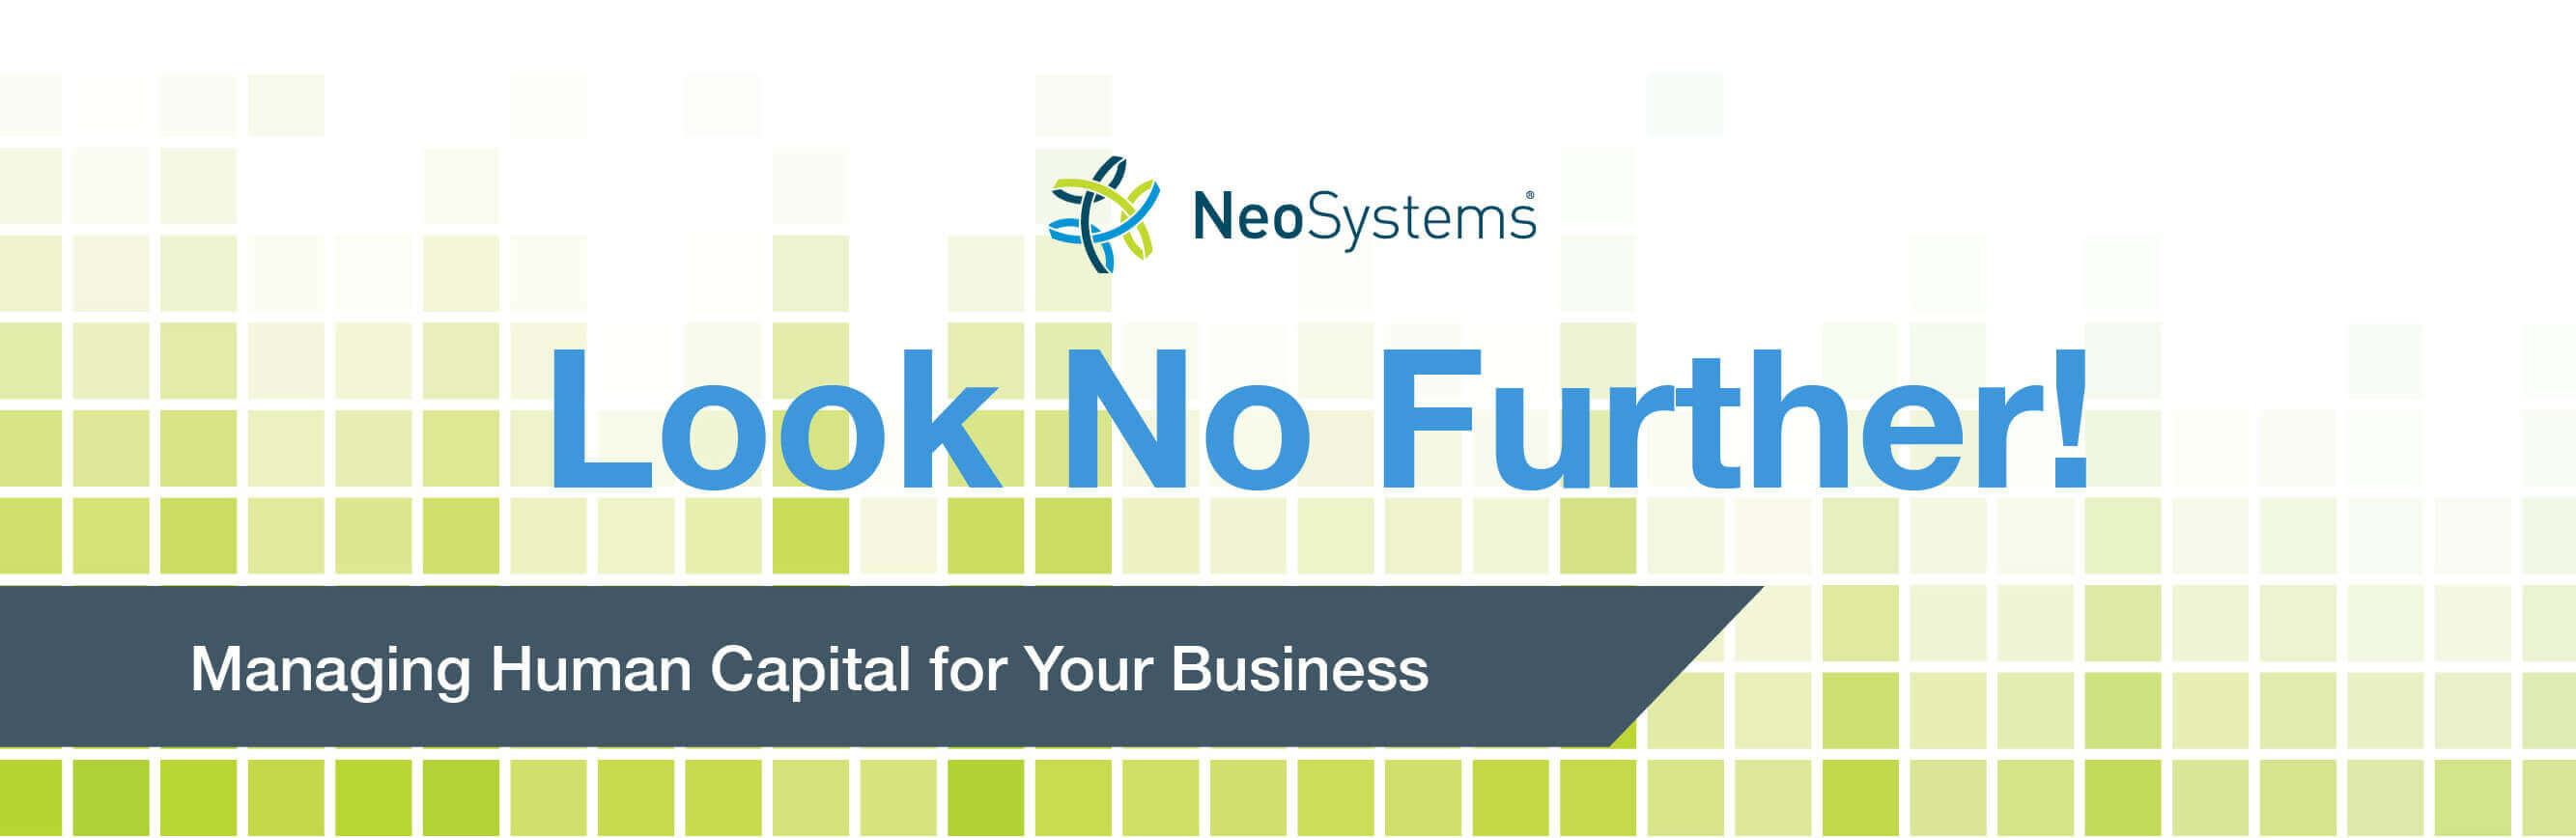 NeoSystems manages Human Capital for your business